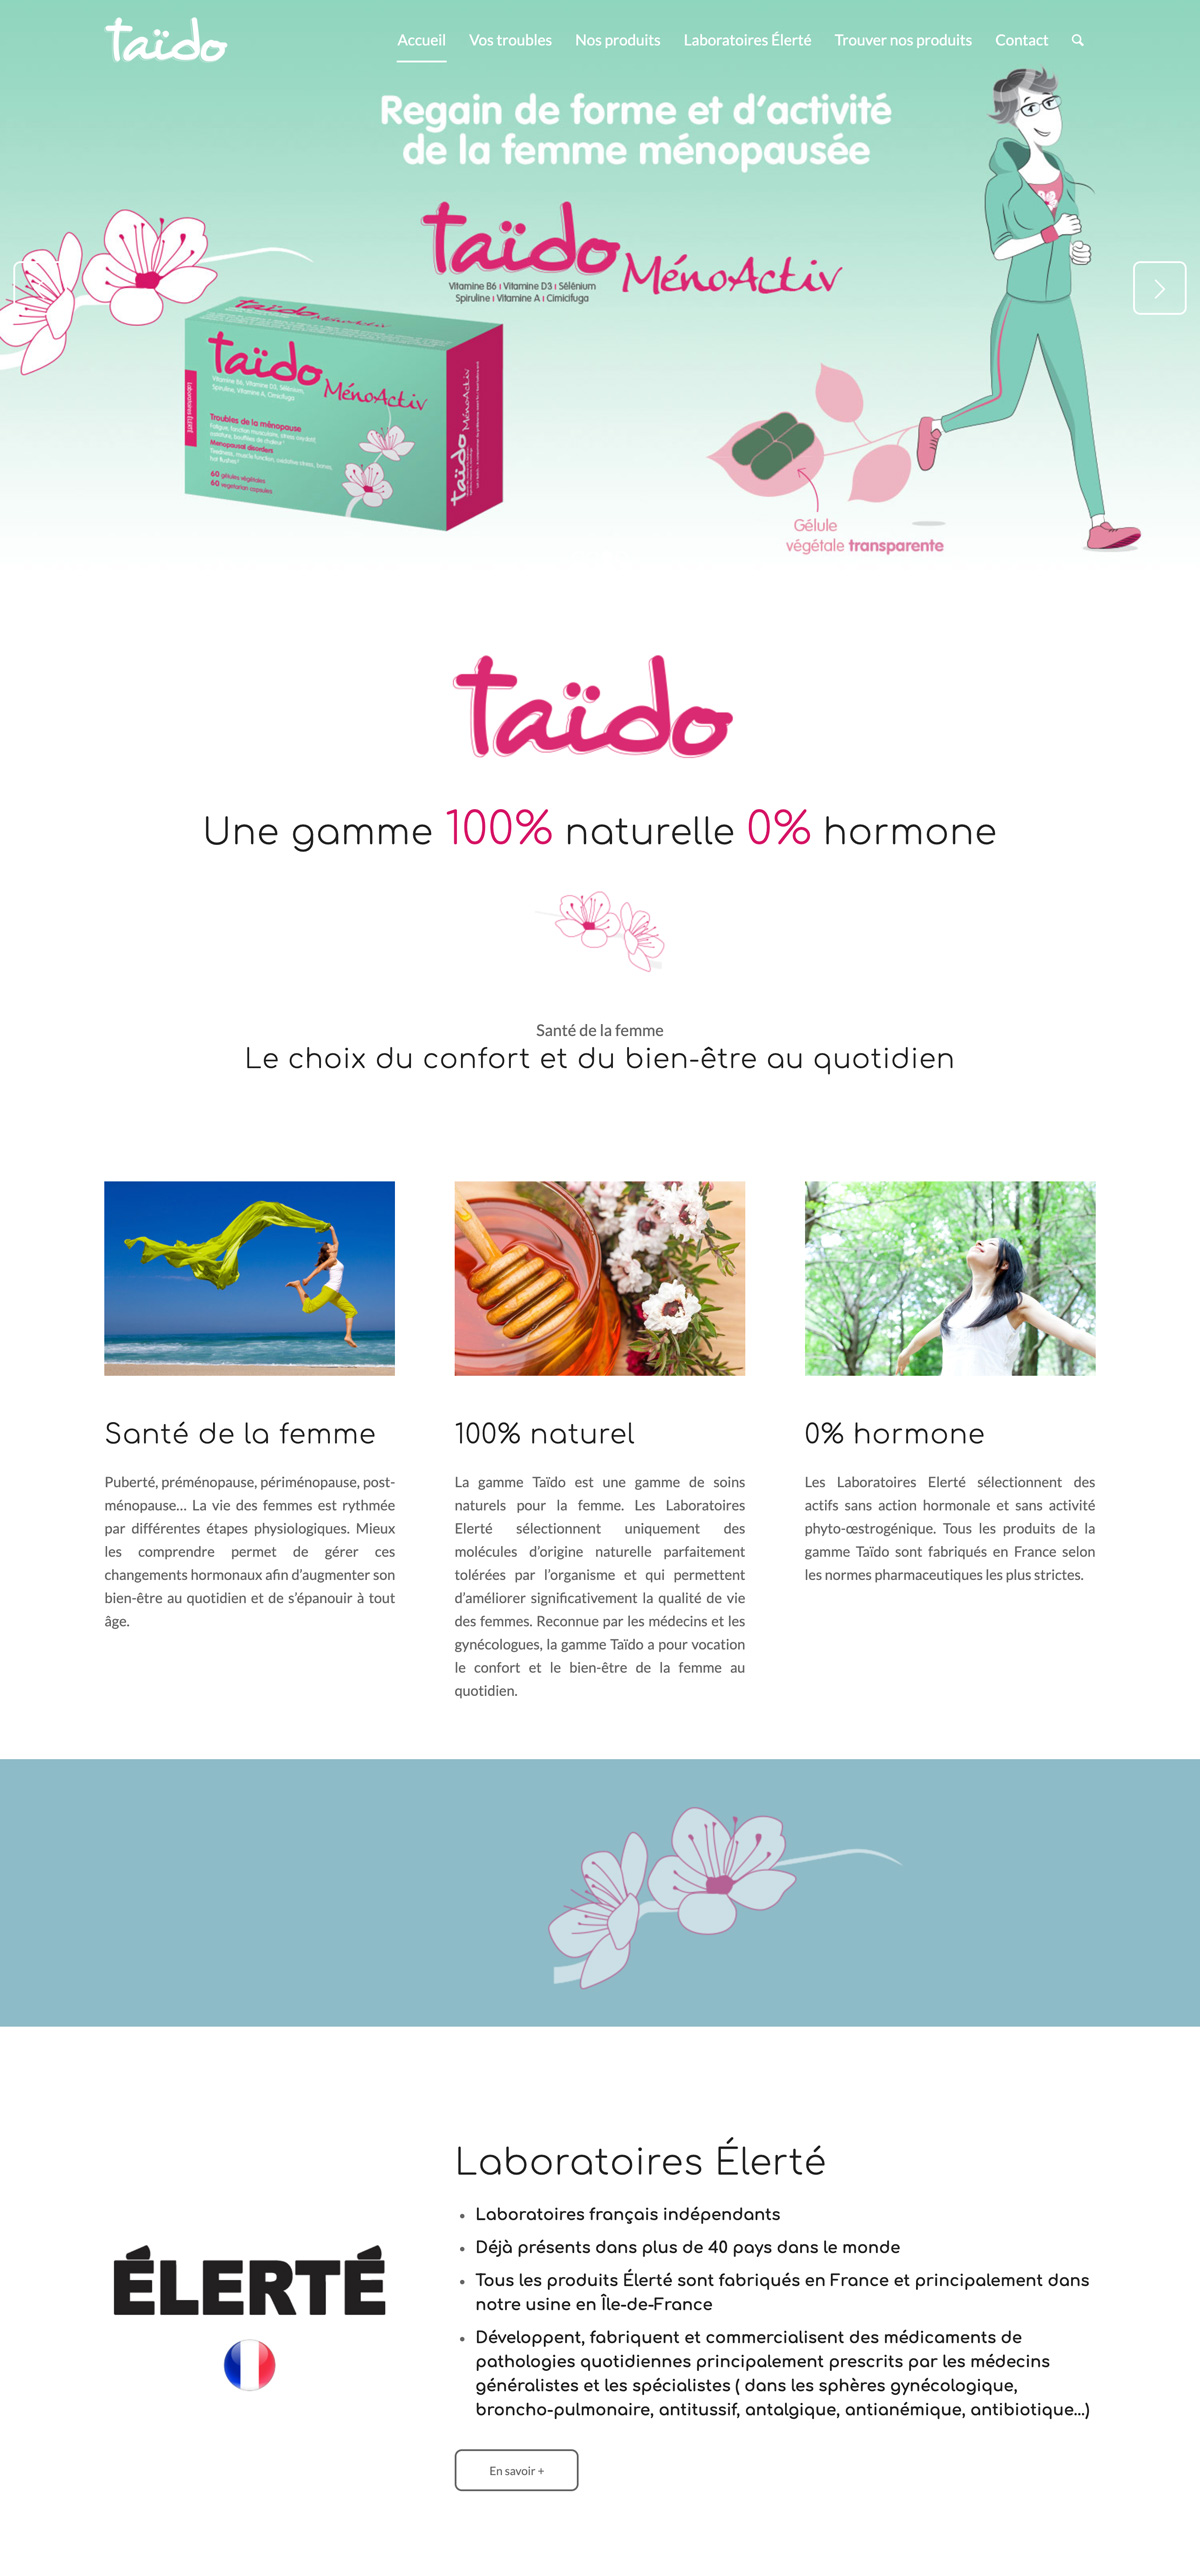 rdsc taido website screenshot